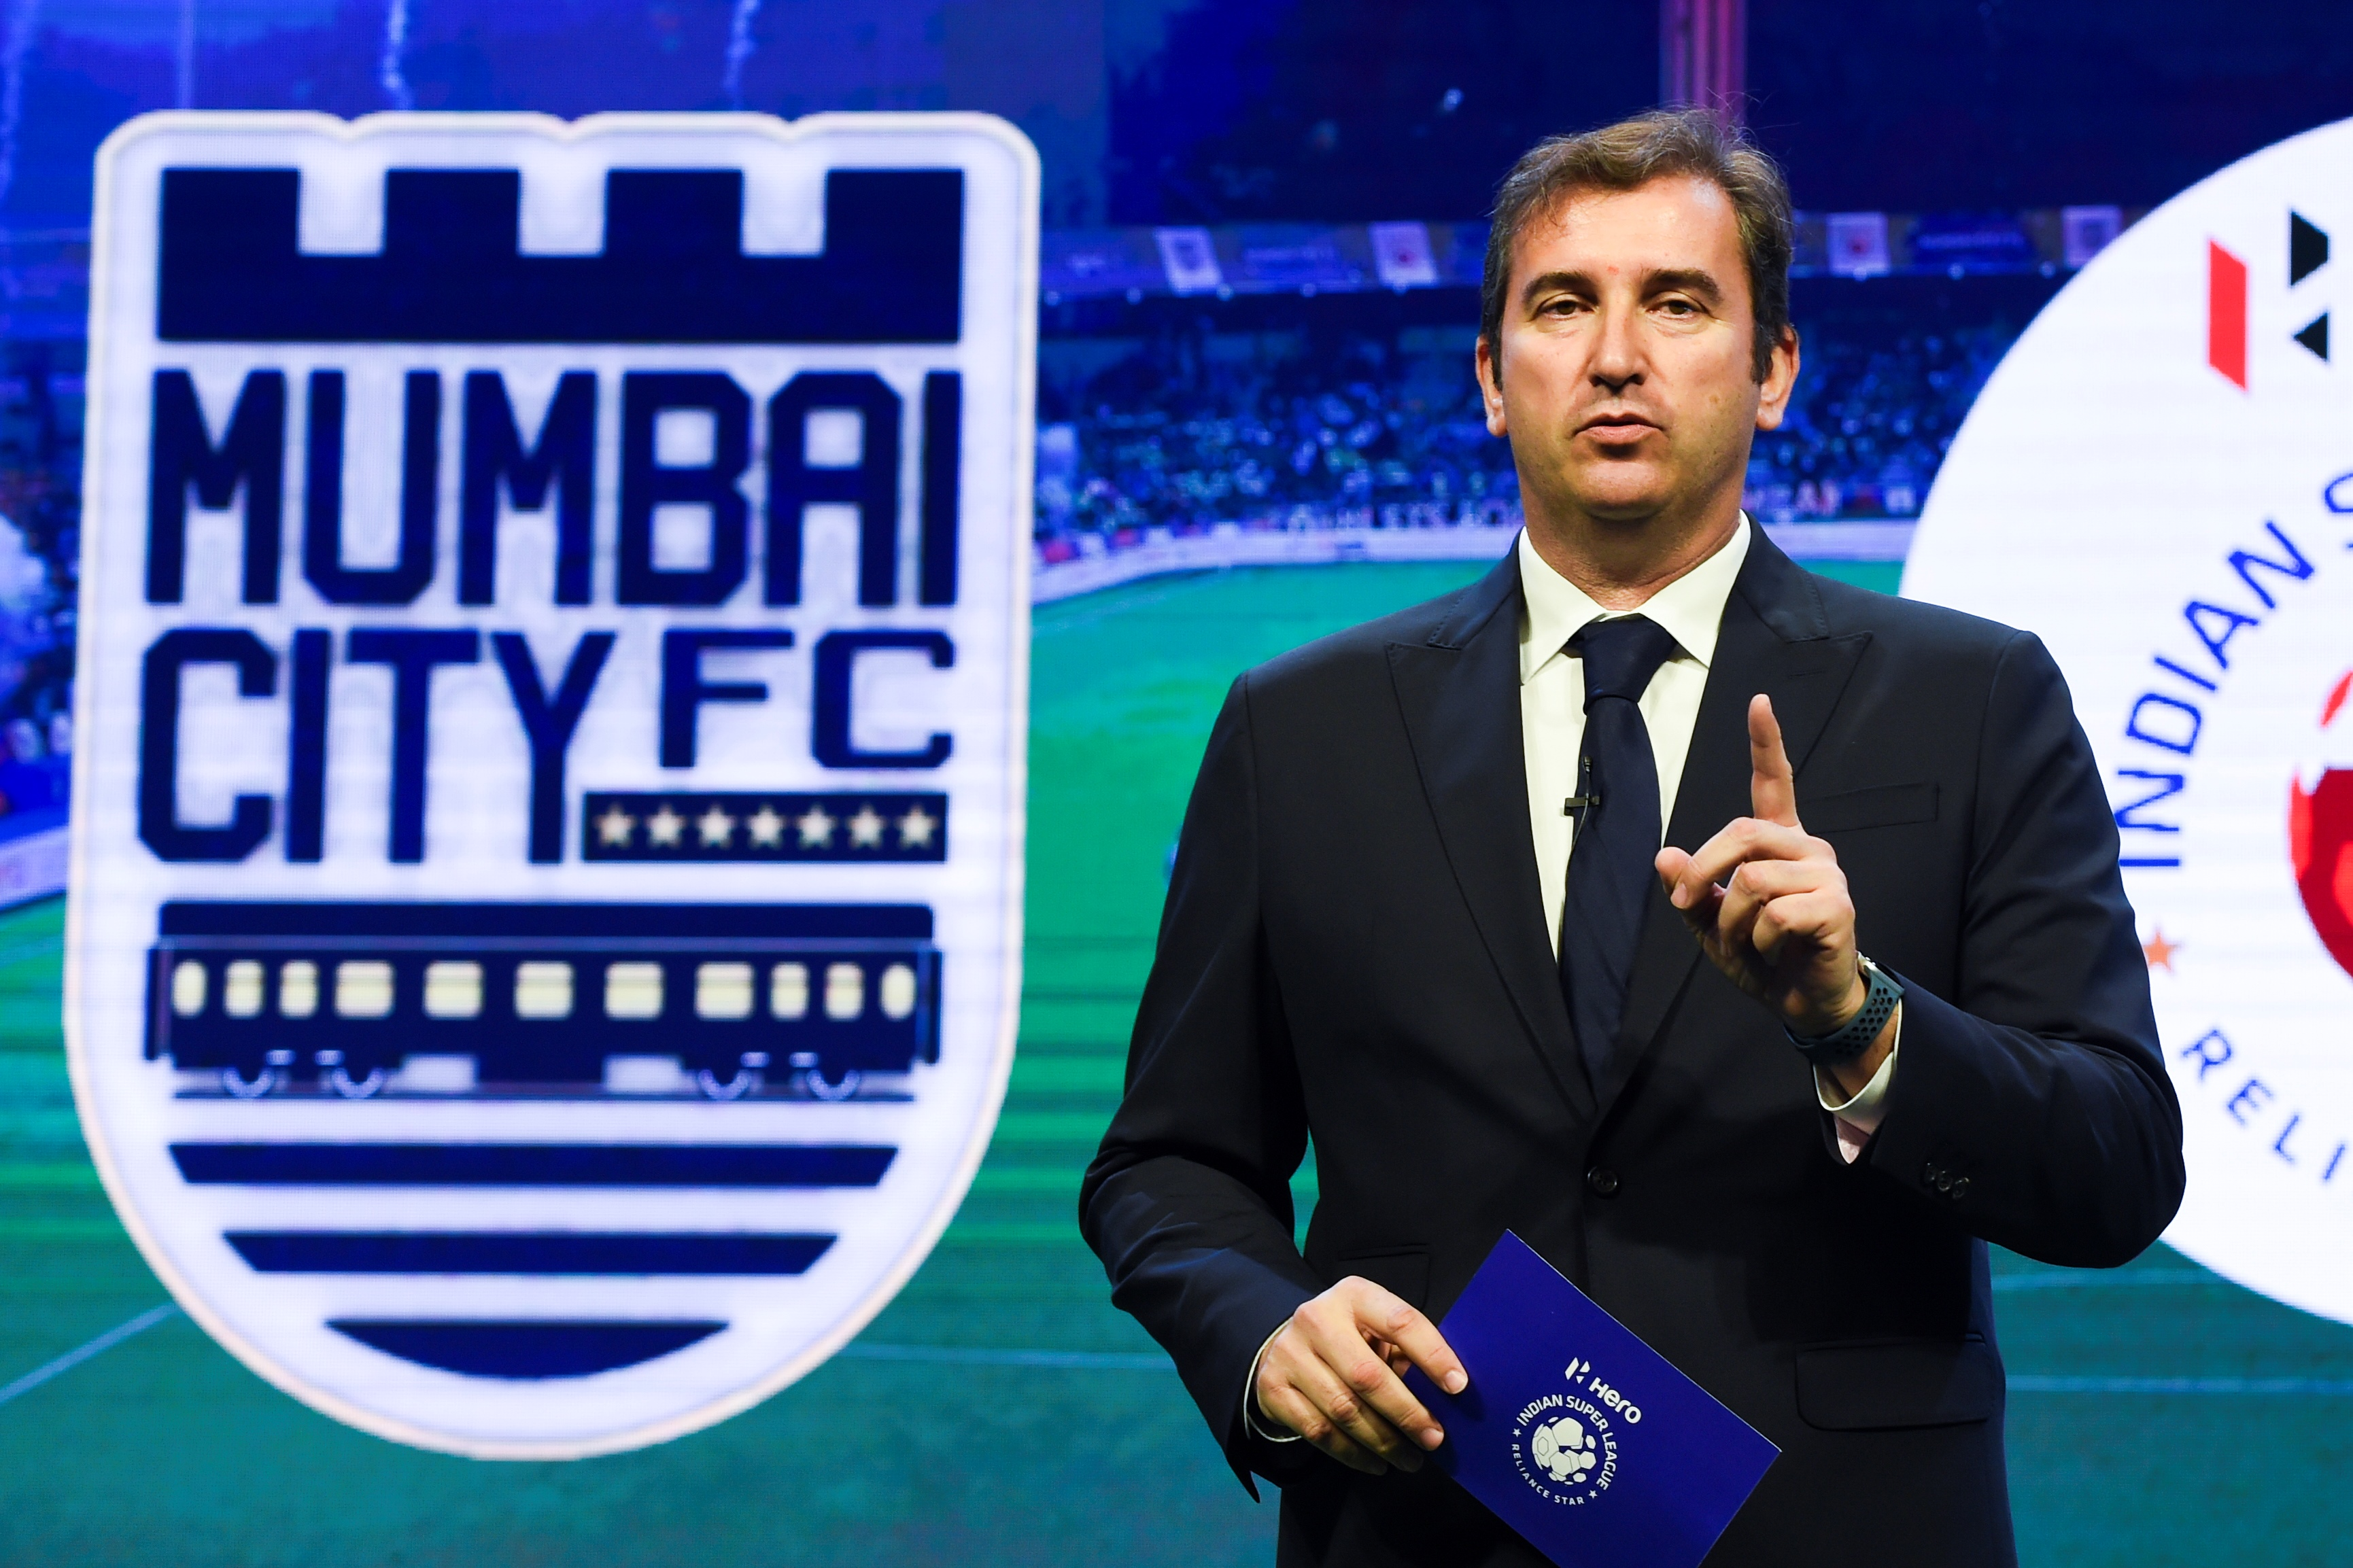 English Premier League football club Manchester City and City Football Group (CFG) CEO Ferran Soriano speaks during an event in Mumbai on November 28, 2019. - The owners of English Premier League champions Manchester City on Thursday made Mumbai City FC of India the eighth club in their global football empire. (Photo by INDRANIL MUKHERJEE / AFP) (Photo by INDRANIL MUKHERJEE/AFP via Getty Images)